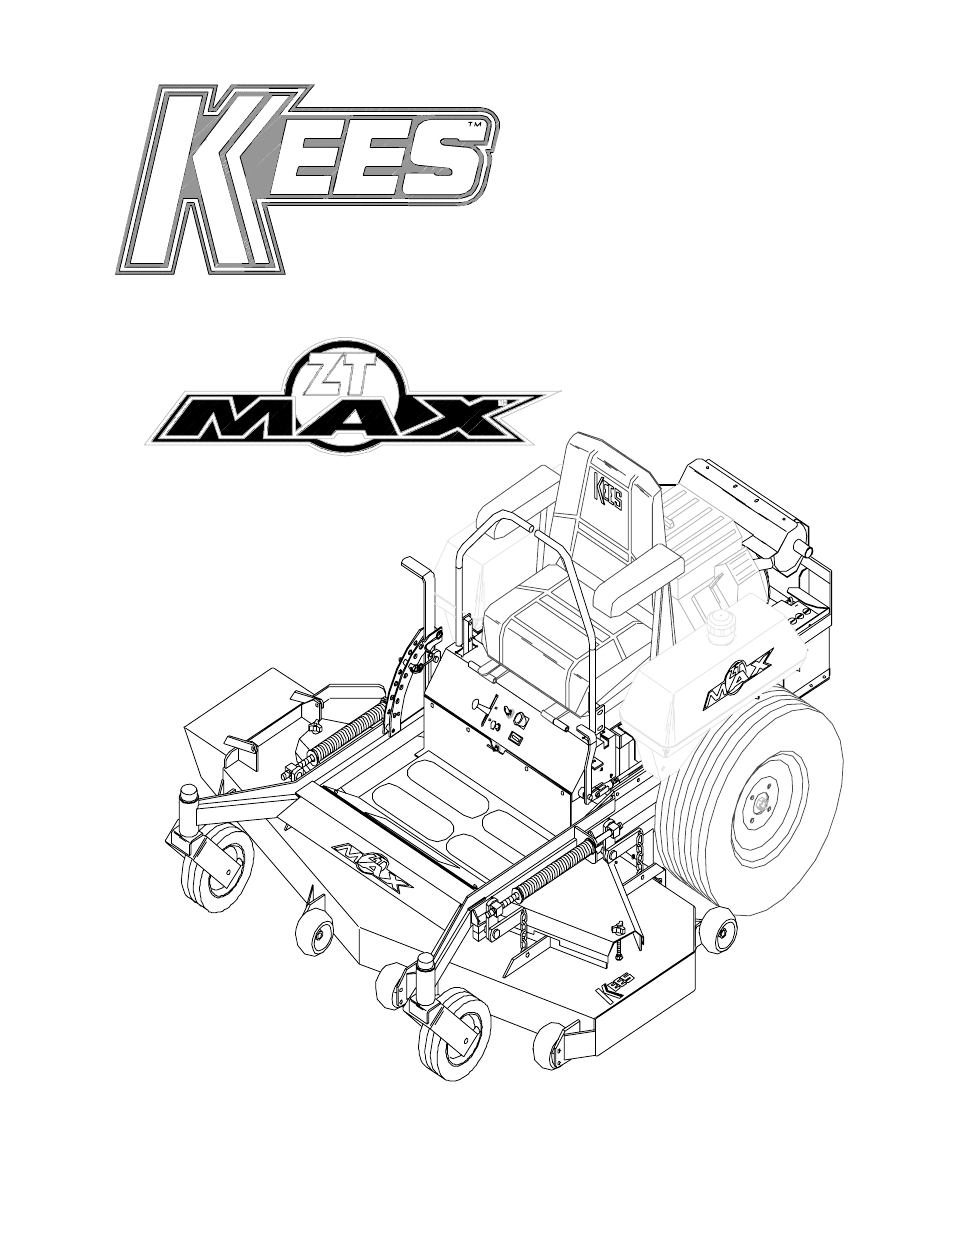 yazoo  kees zt max zkh52221 user manual